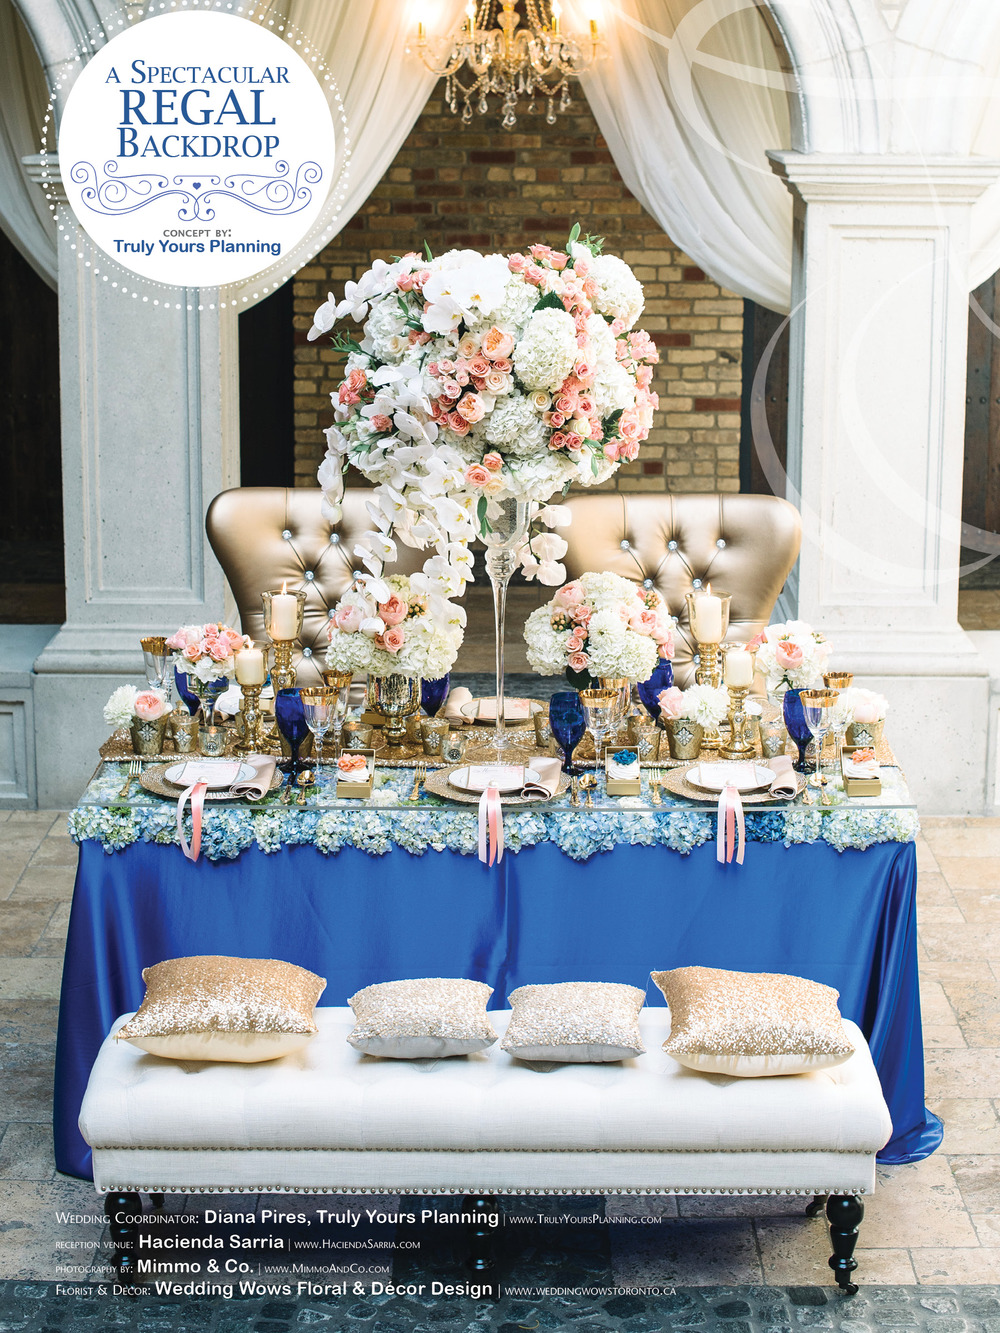 Photo by Mimmo & Co., Truly Yours Planning, Venue: Hacienda Sarria, Florist & Décor: Weddings Wows Floral & Décor Design, Chairs: Detailz, Flatware/Glassware: Chairman Mills, Chandeliers: Crystal. Cobalt blue satin